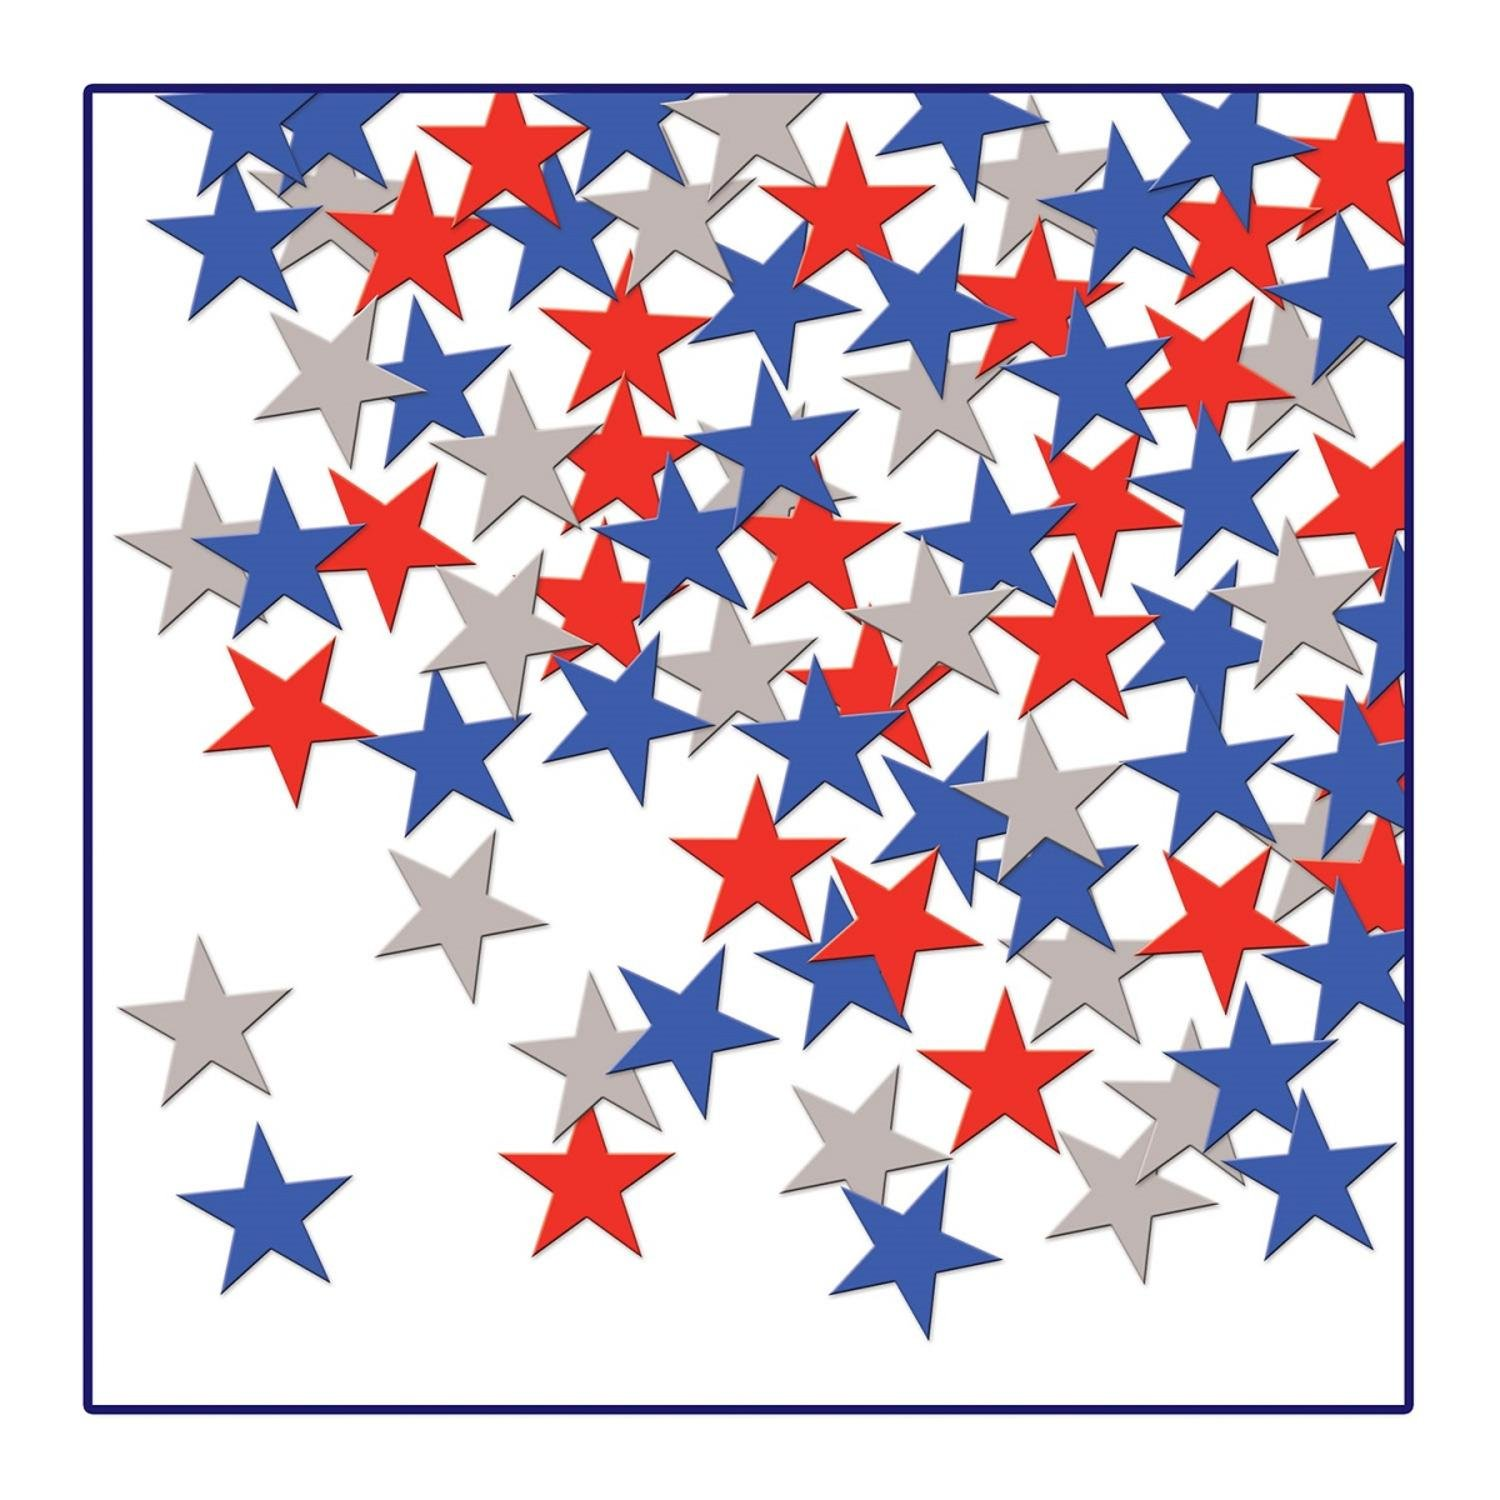 Party Central Club Pack of 12 Patriotic Red, Silver and Blue Fanci-Fetti Star Celebration Confetti Bags 1 oz.